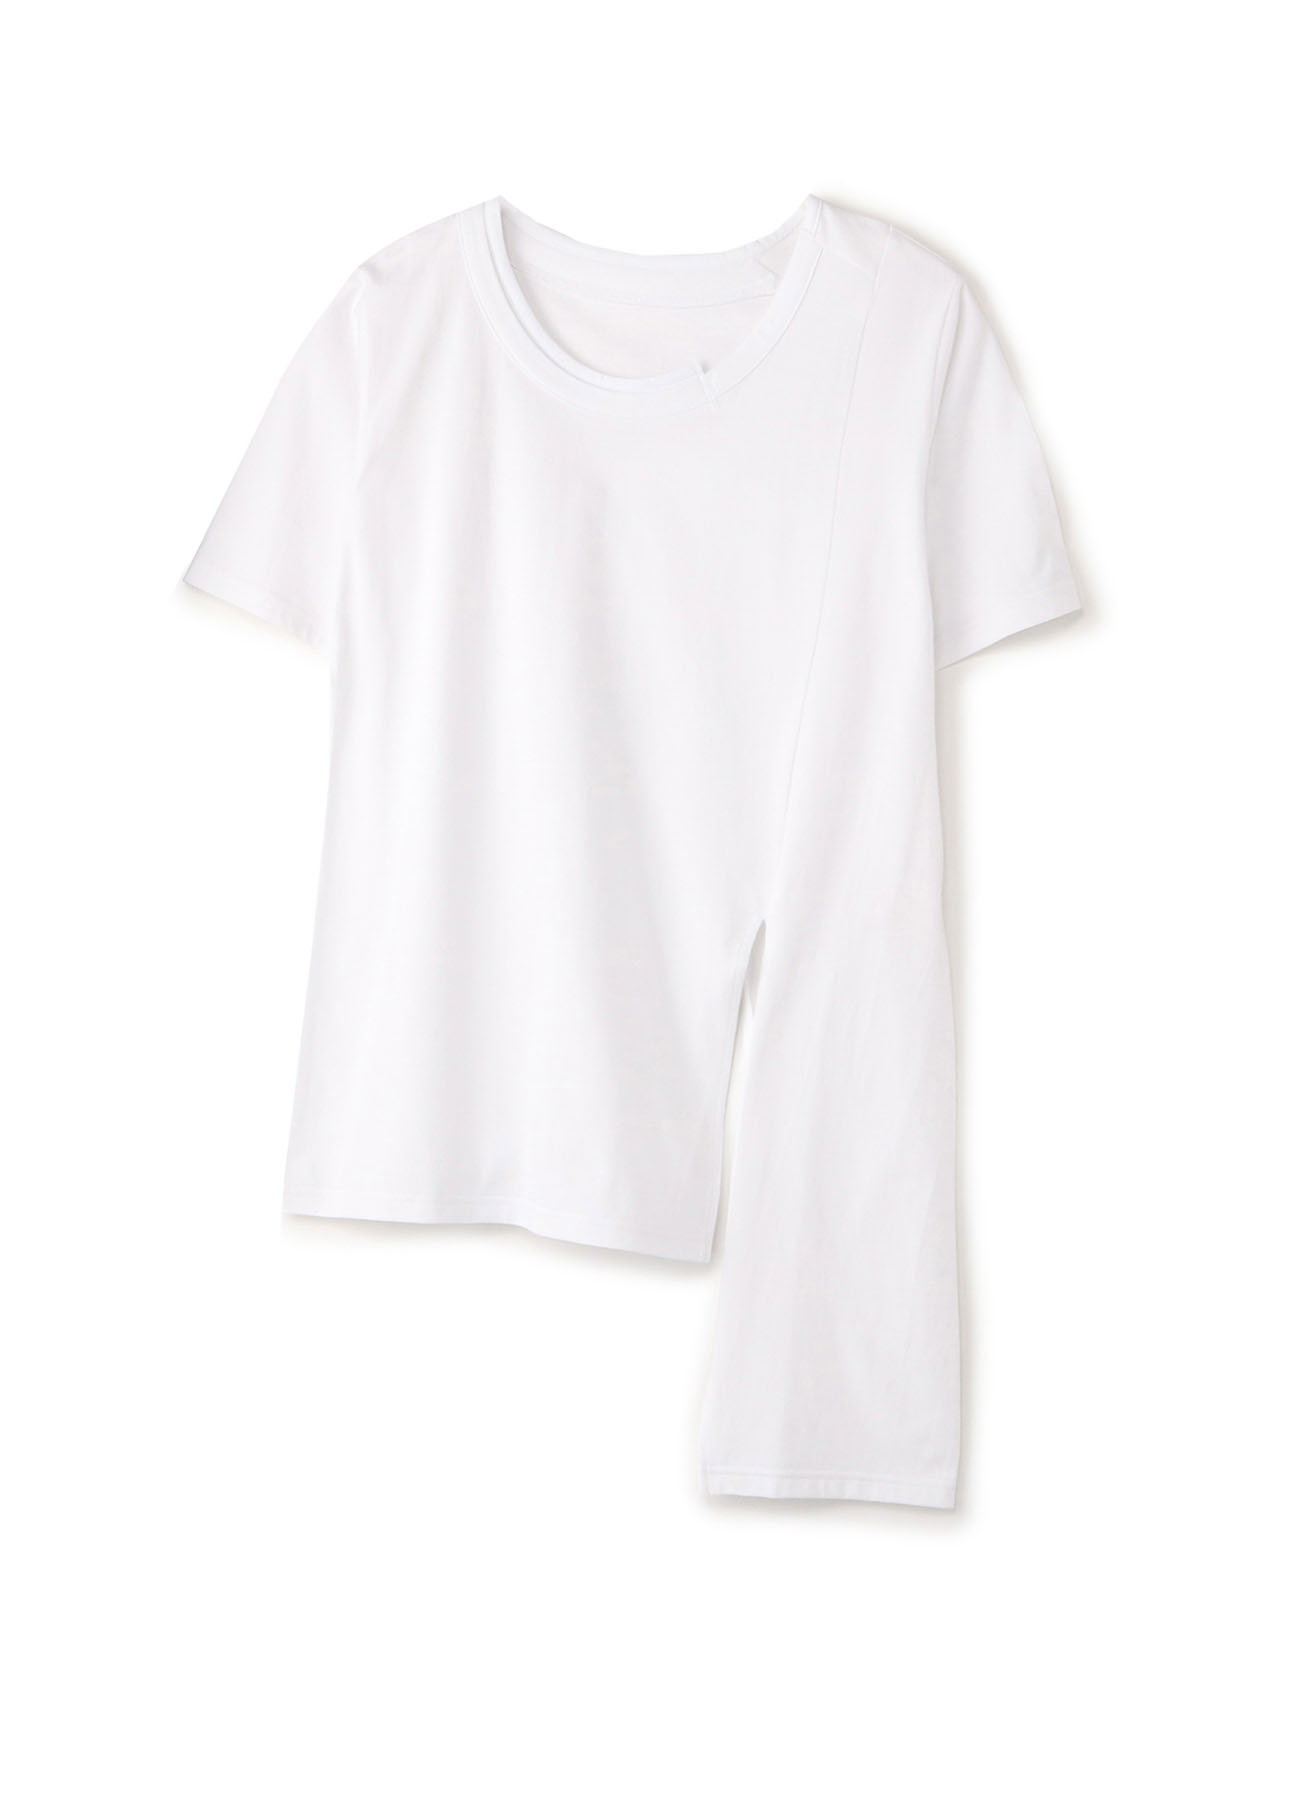 30/Cotton Jersey Asymmetry Short Sleeves Cut Sew